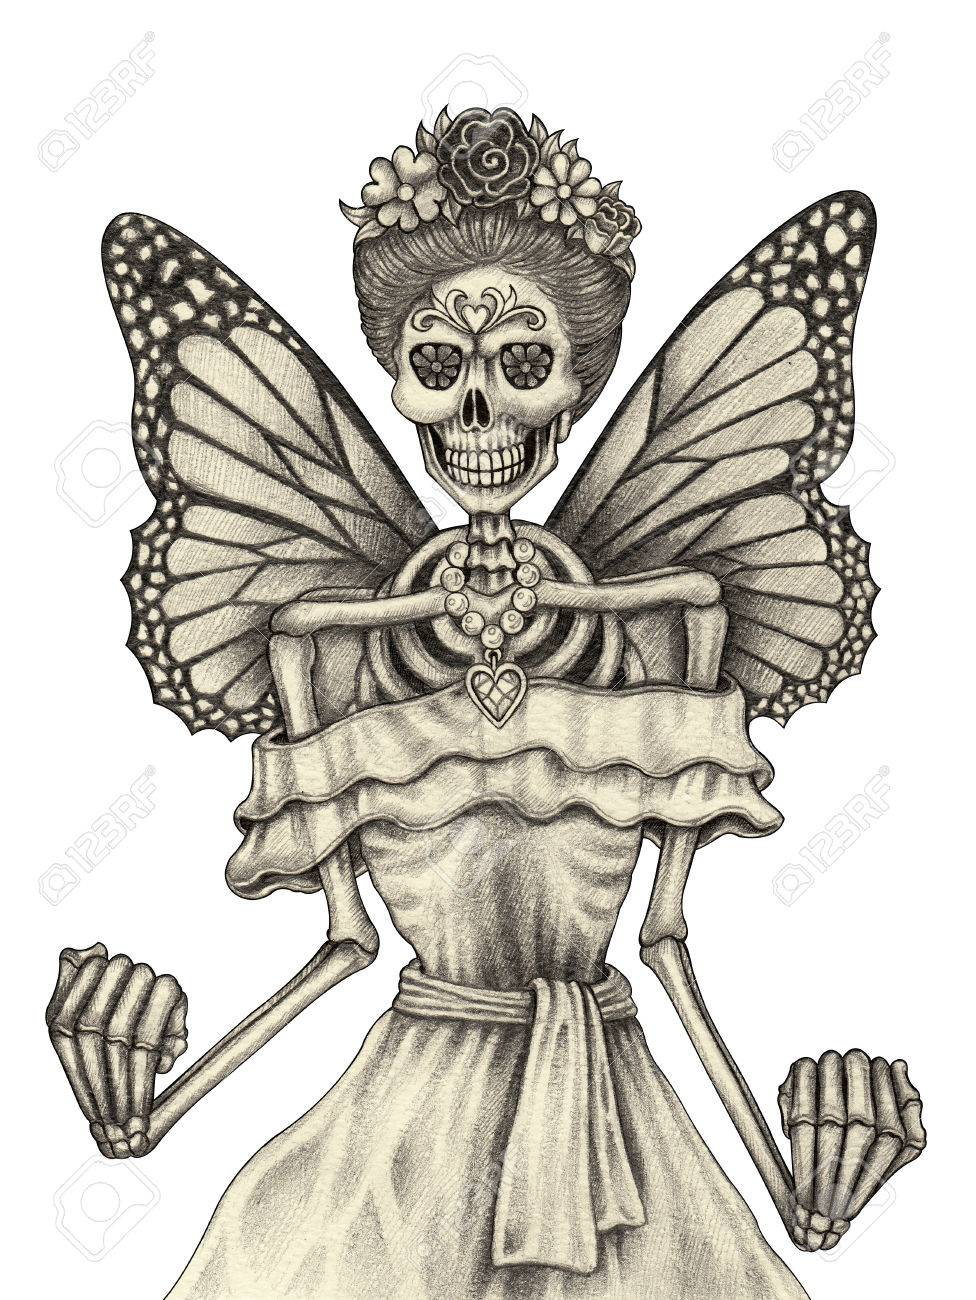 Skull fairy day of the dead hand pencil drawing on paper stock photo